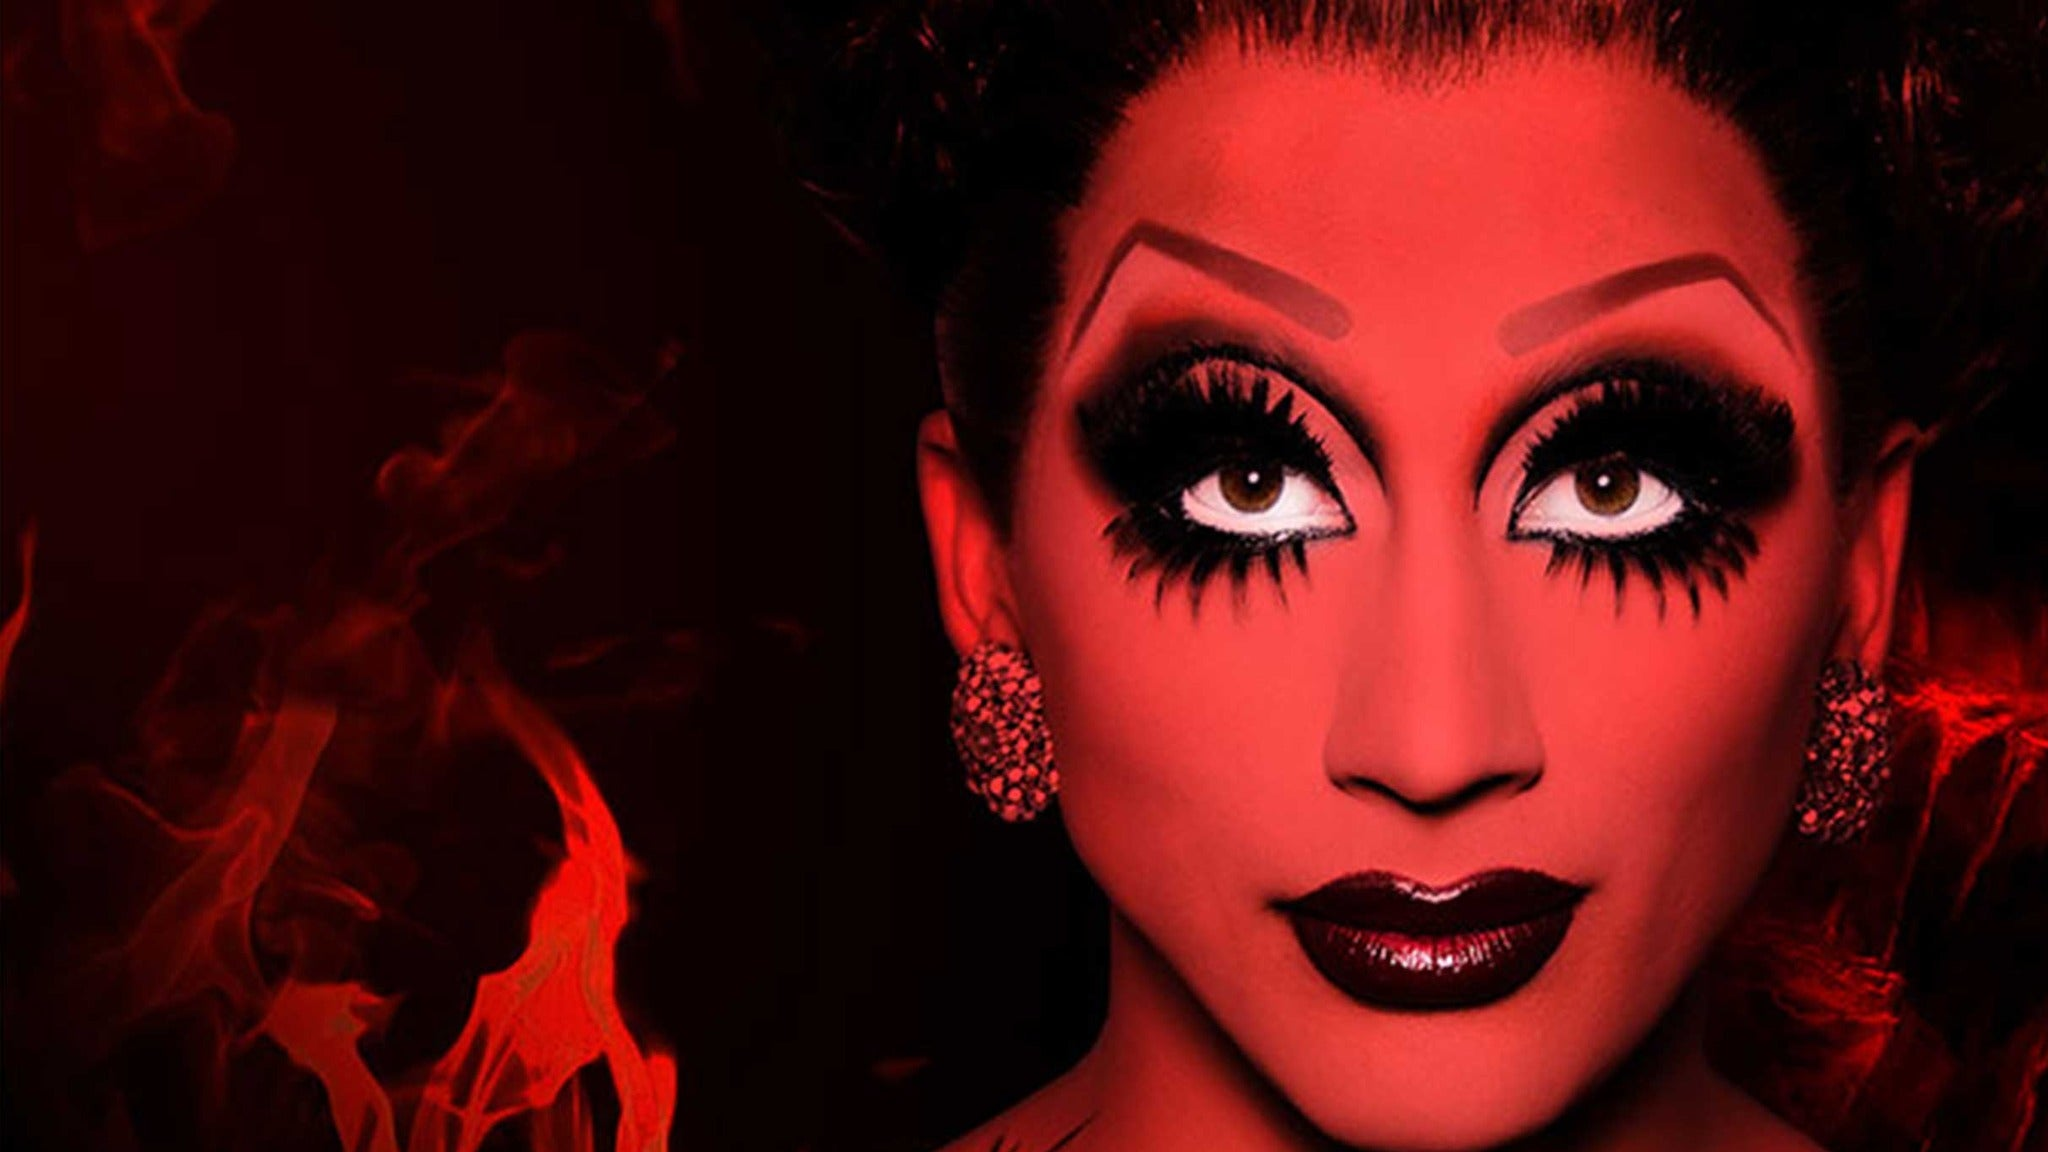 Bianca Del Rio at Variety Playhouse - Atlanta, GA 30307